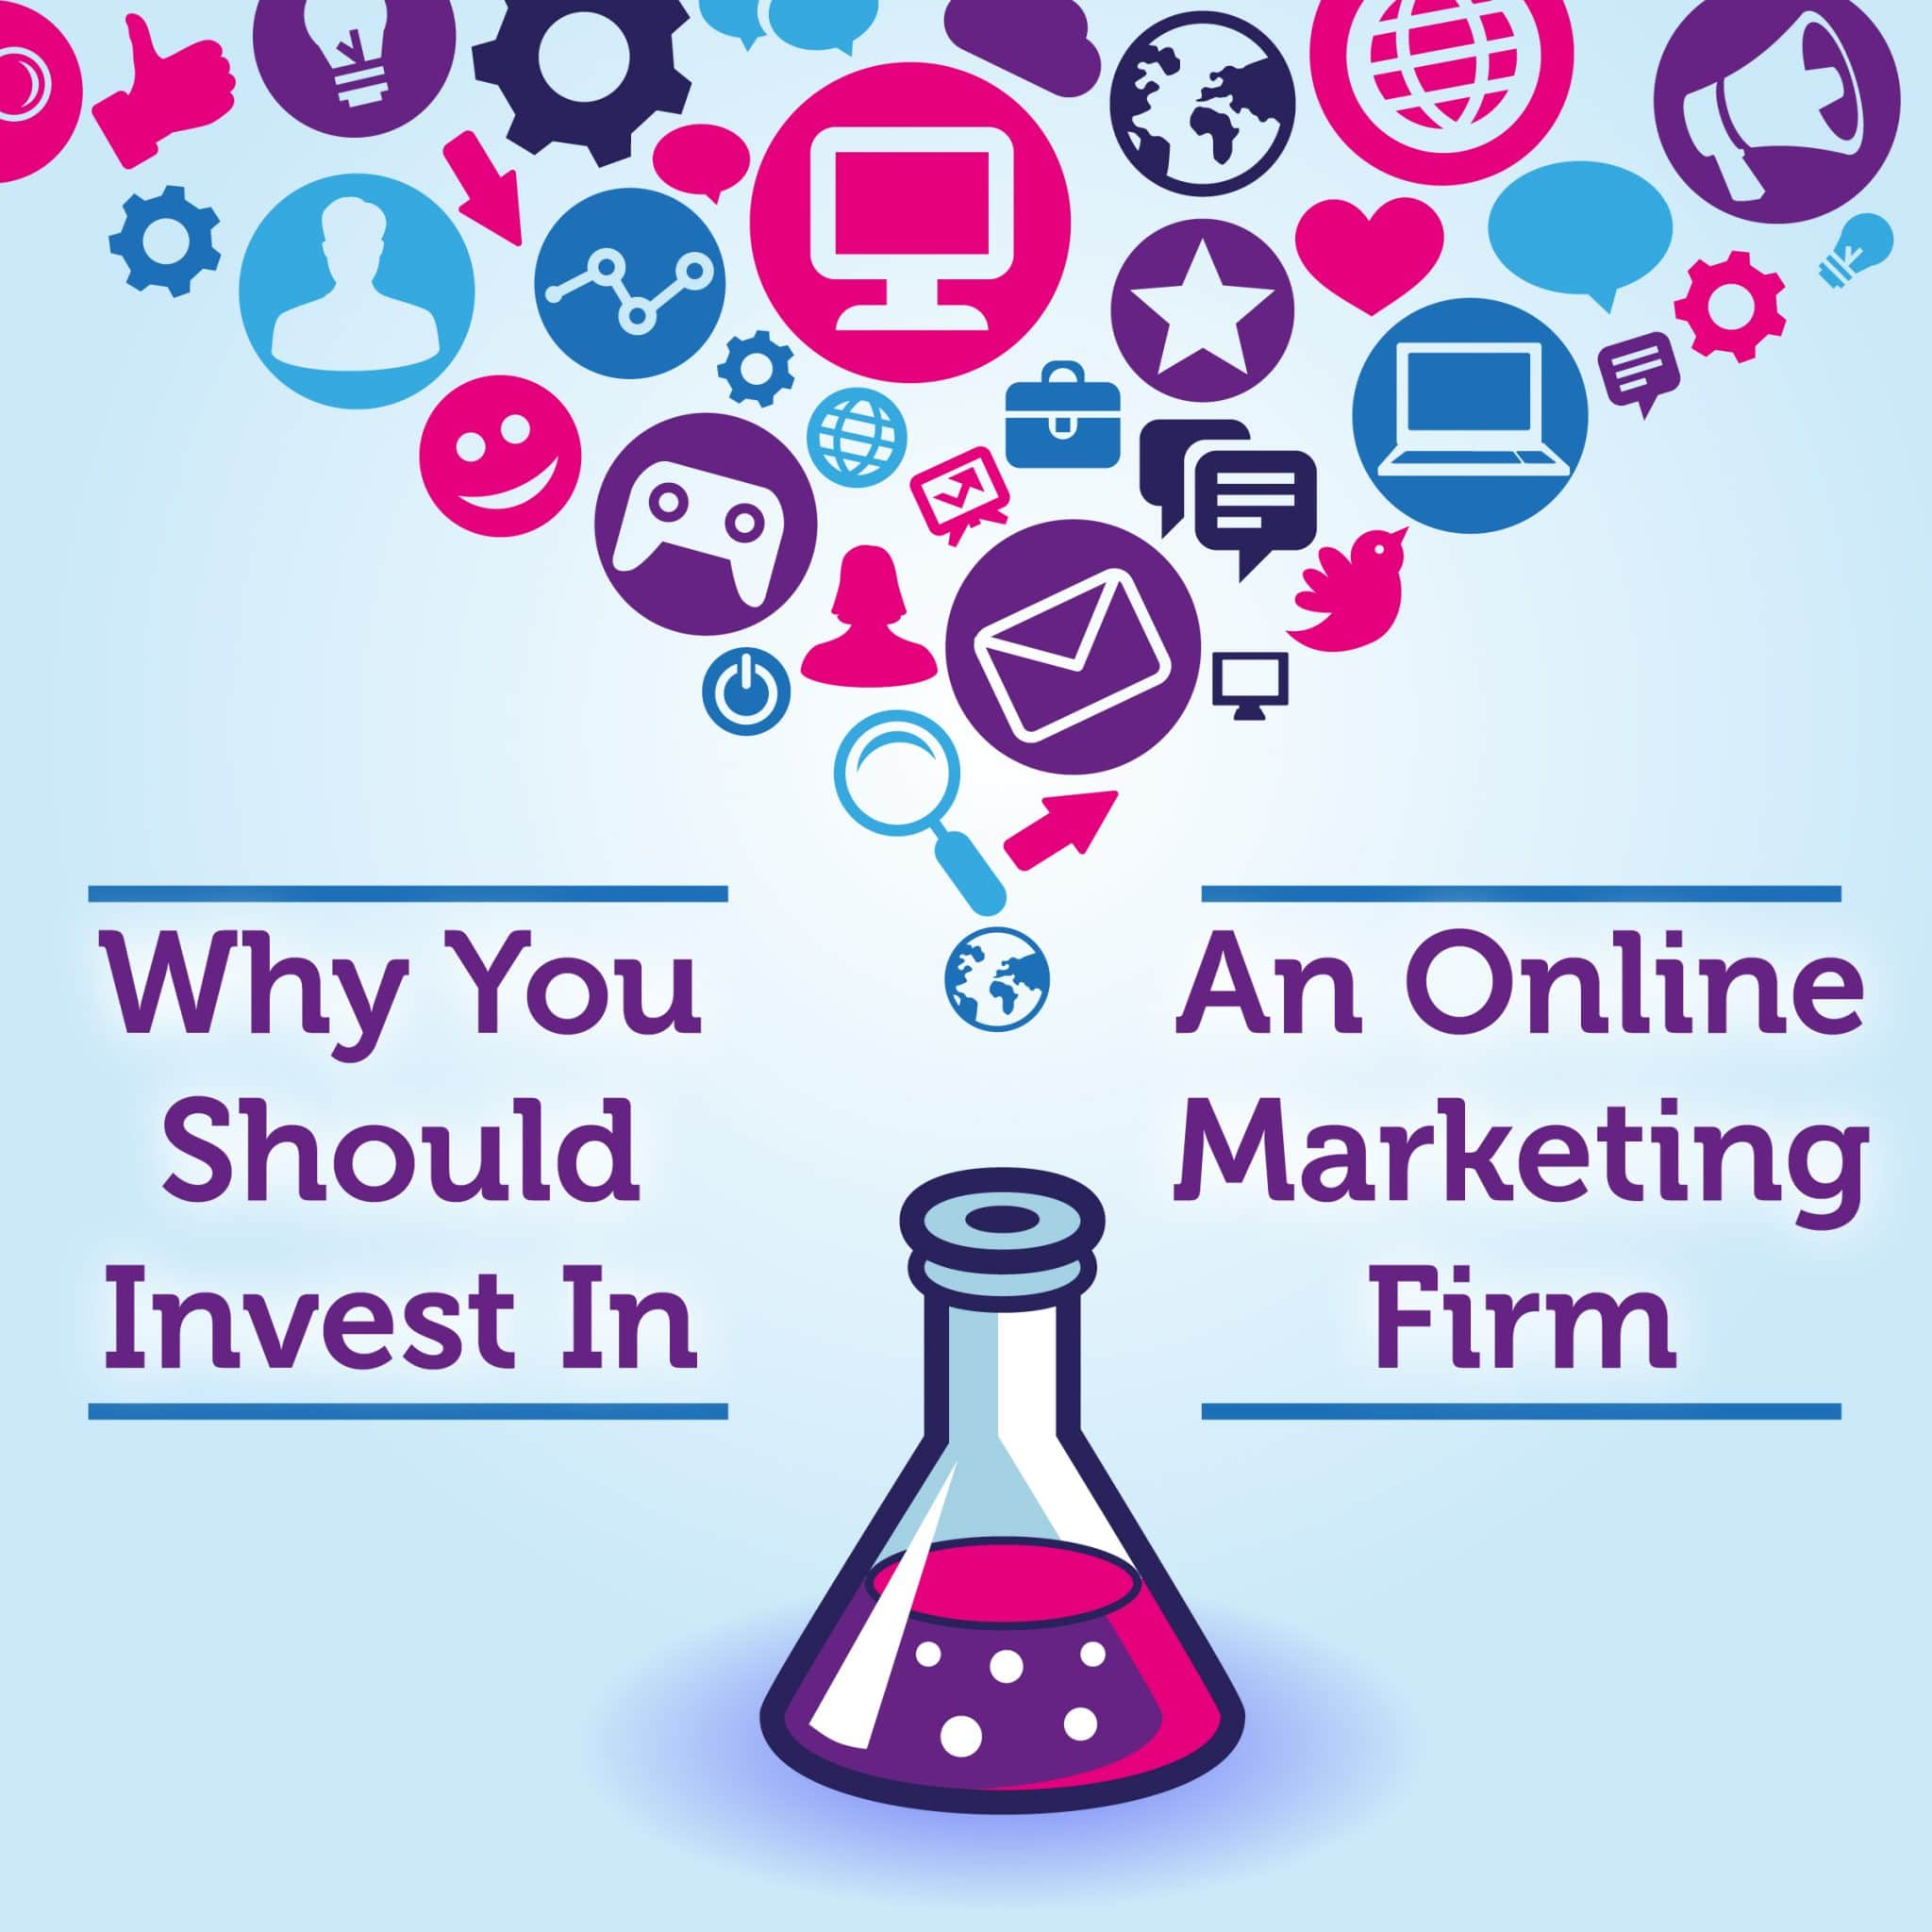 Why You Should Invest In An Online Marketing Firm - Tom & Co